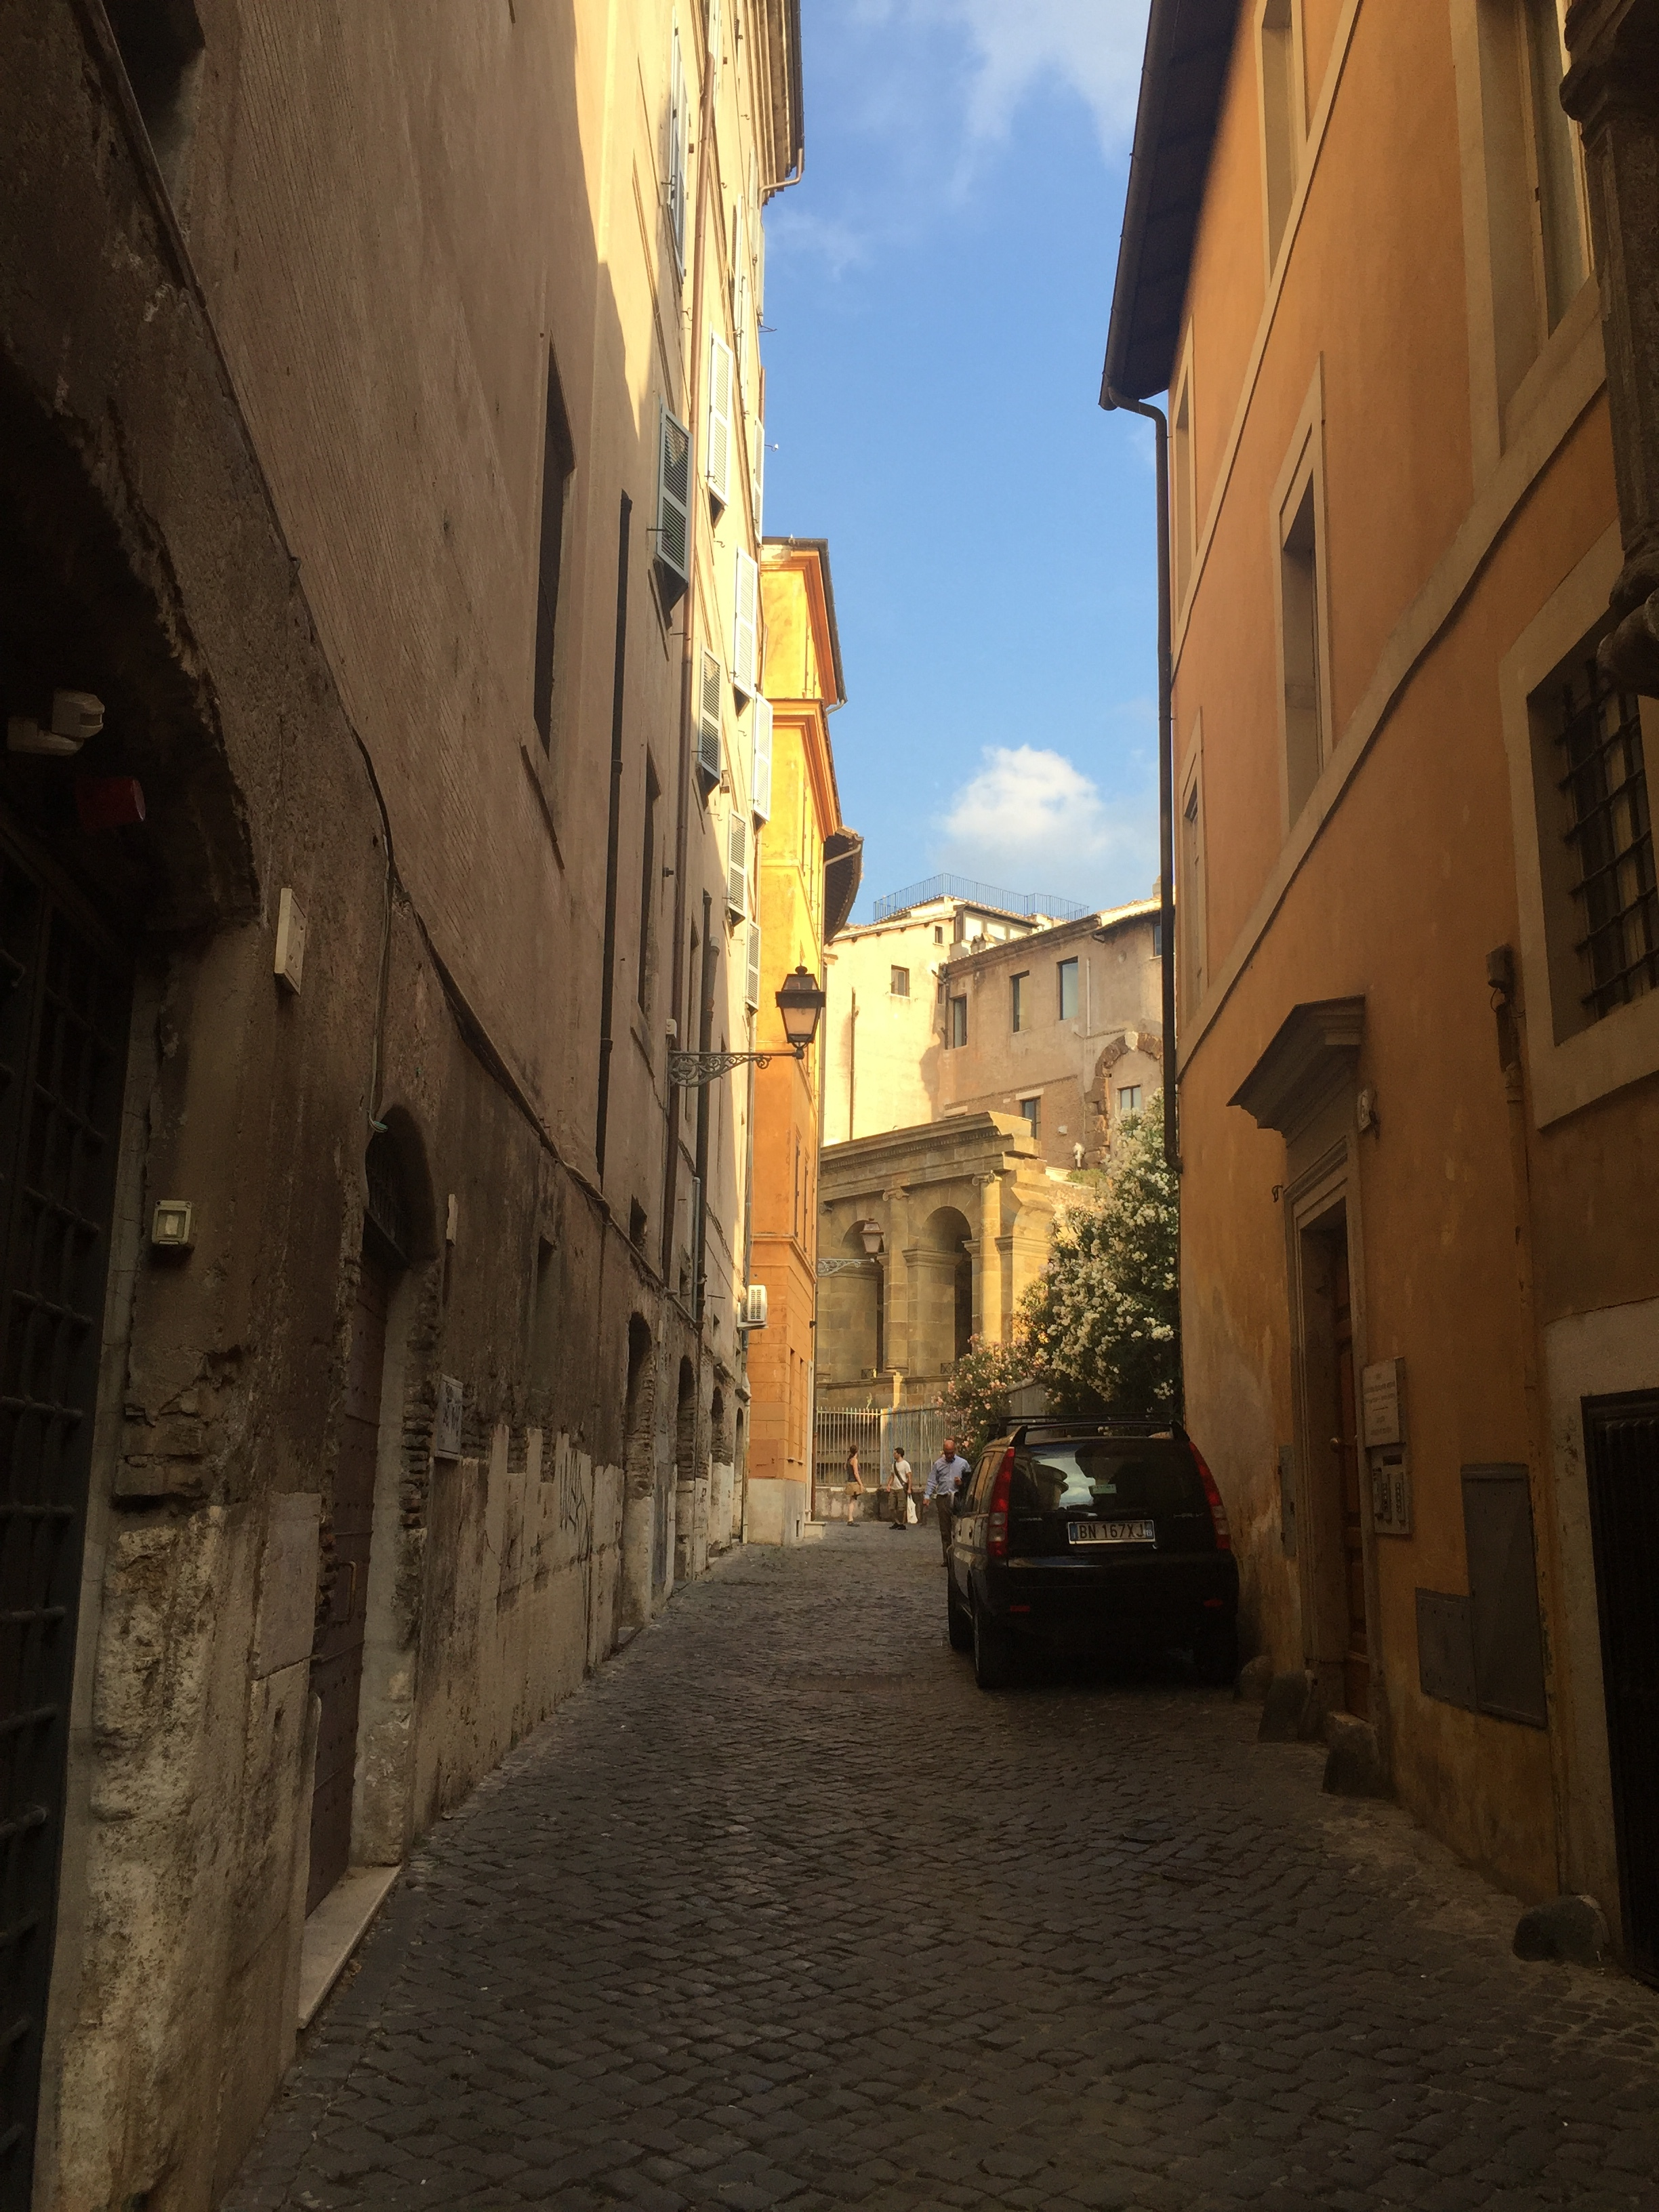 Eating Italy Food Tour Rome: Your classroom